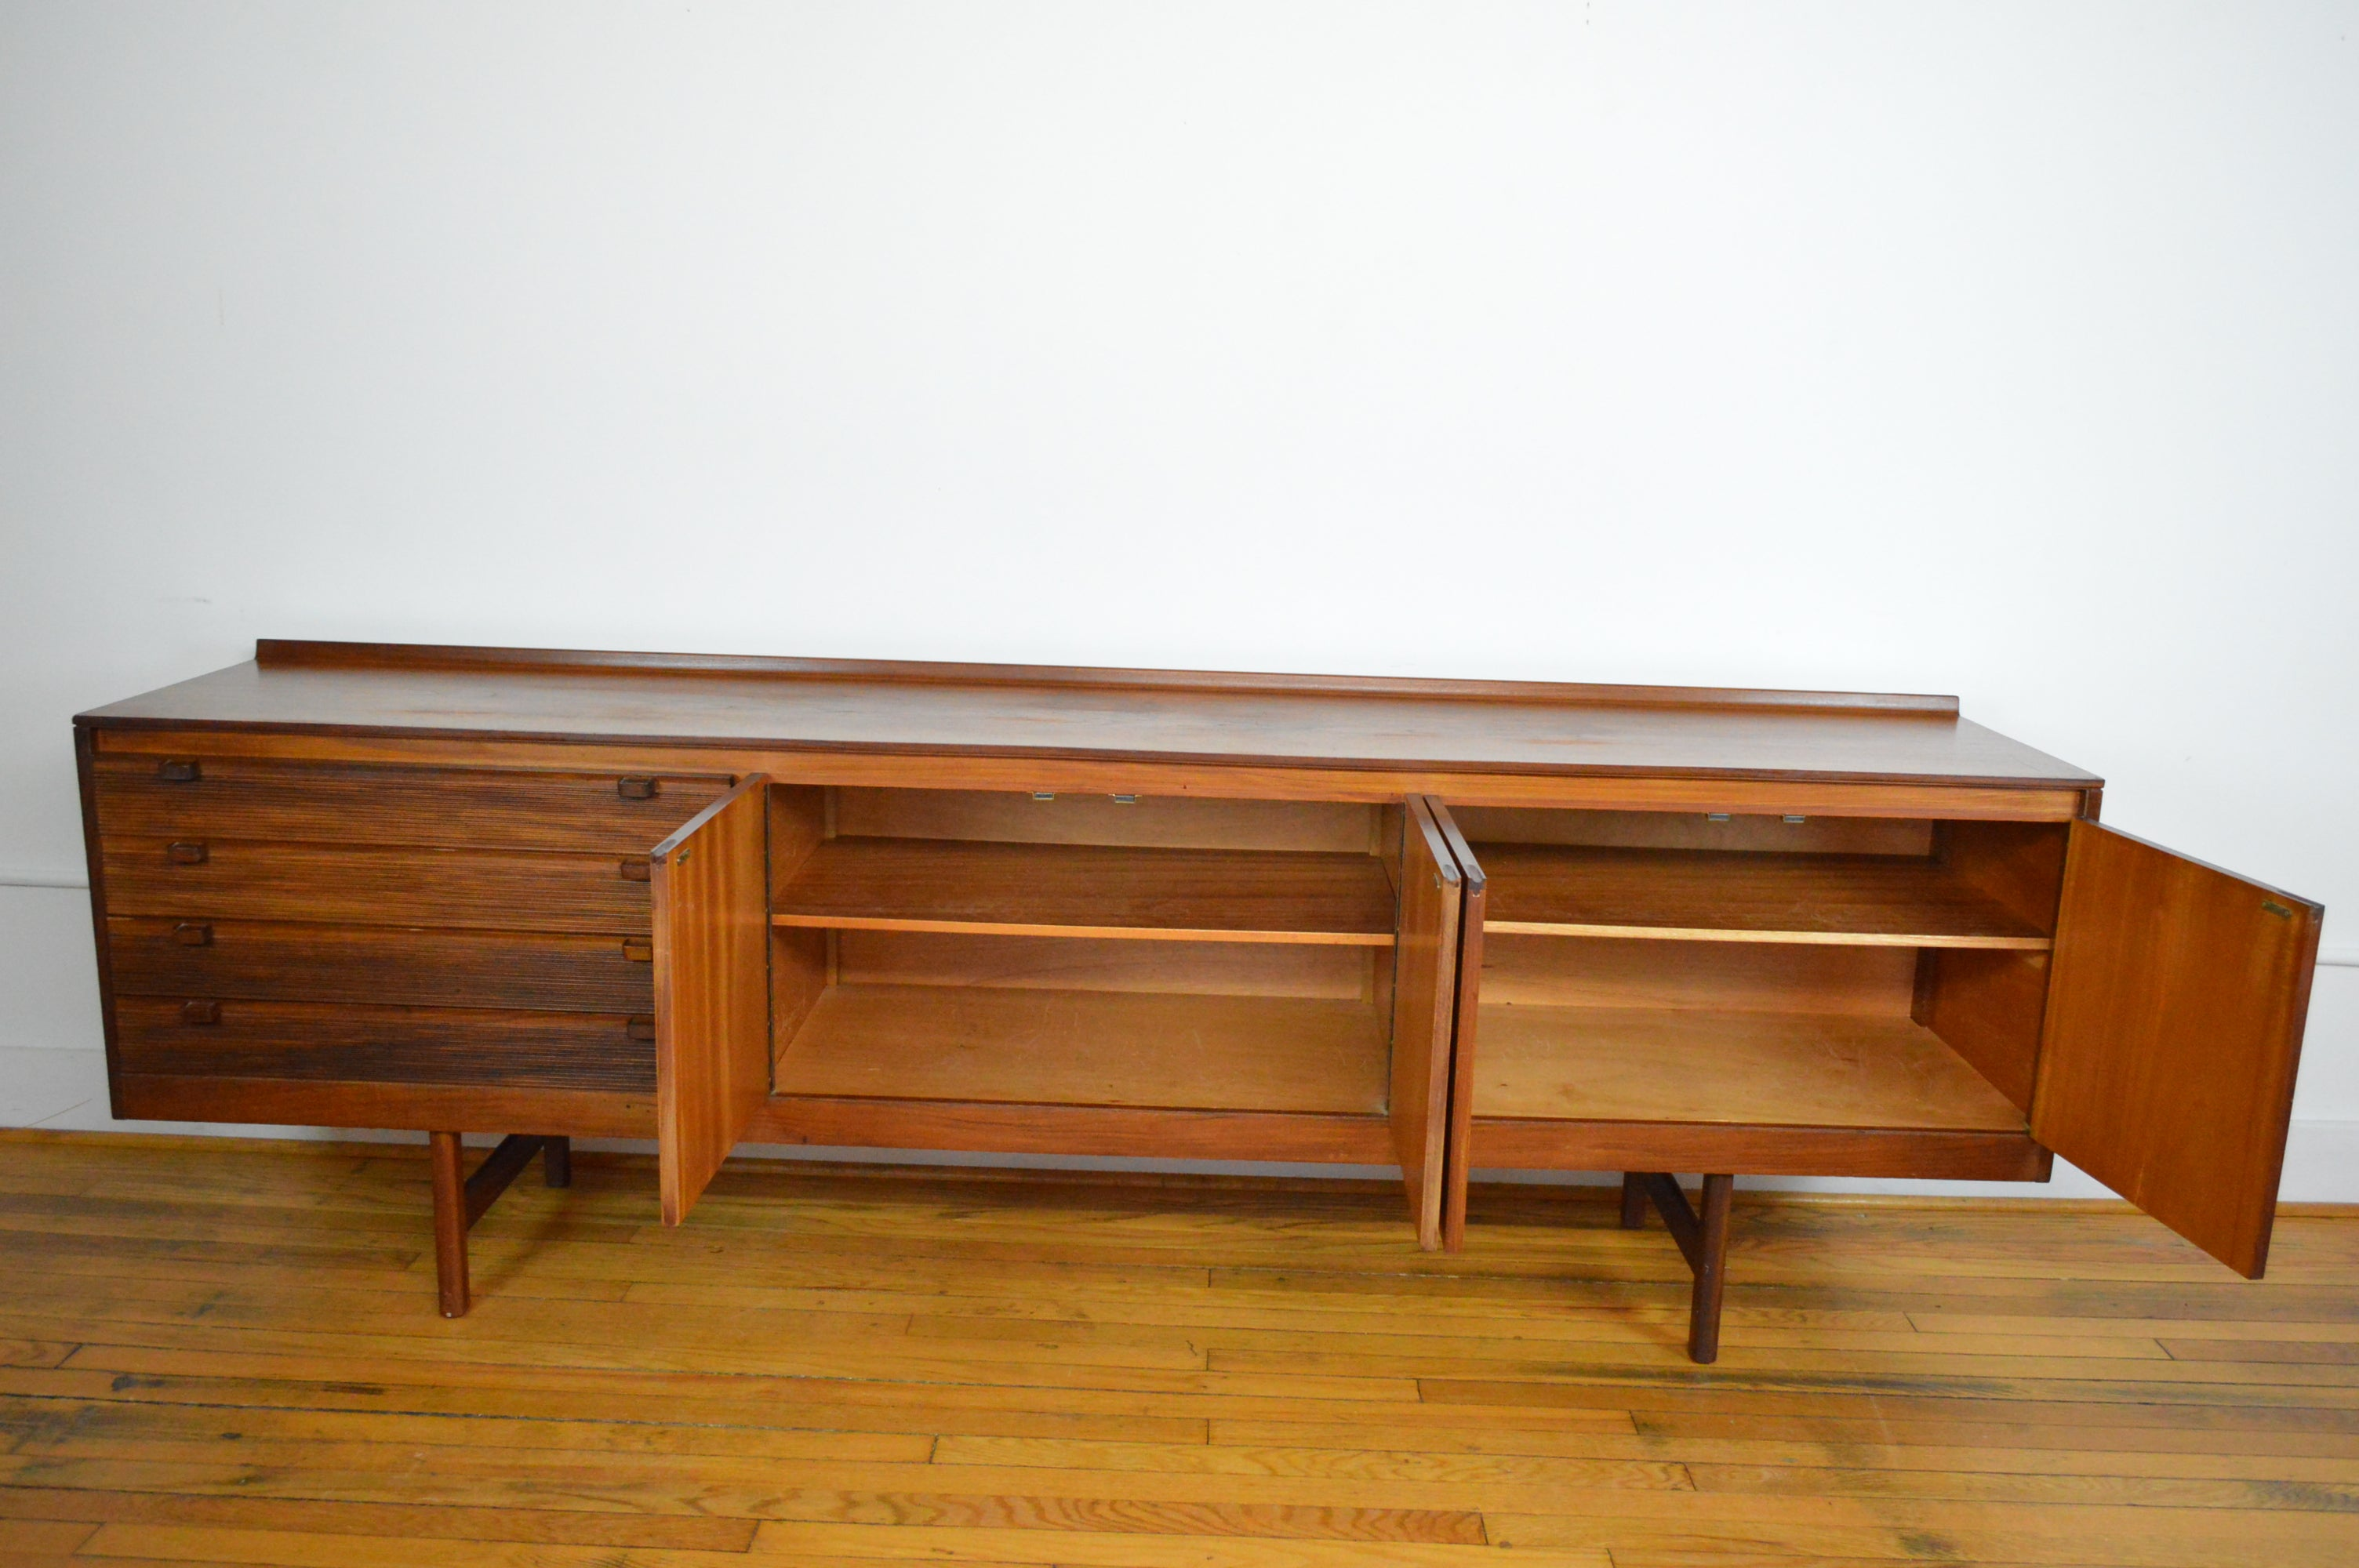 Lovely Robert Heritage For Archie Shine U.K. Extra Long Credenza